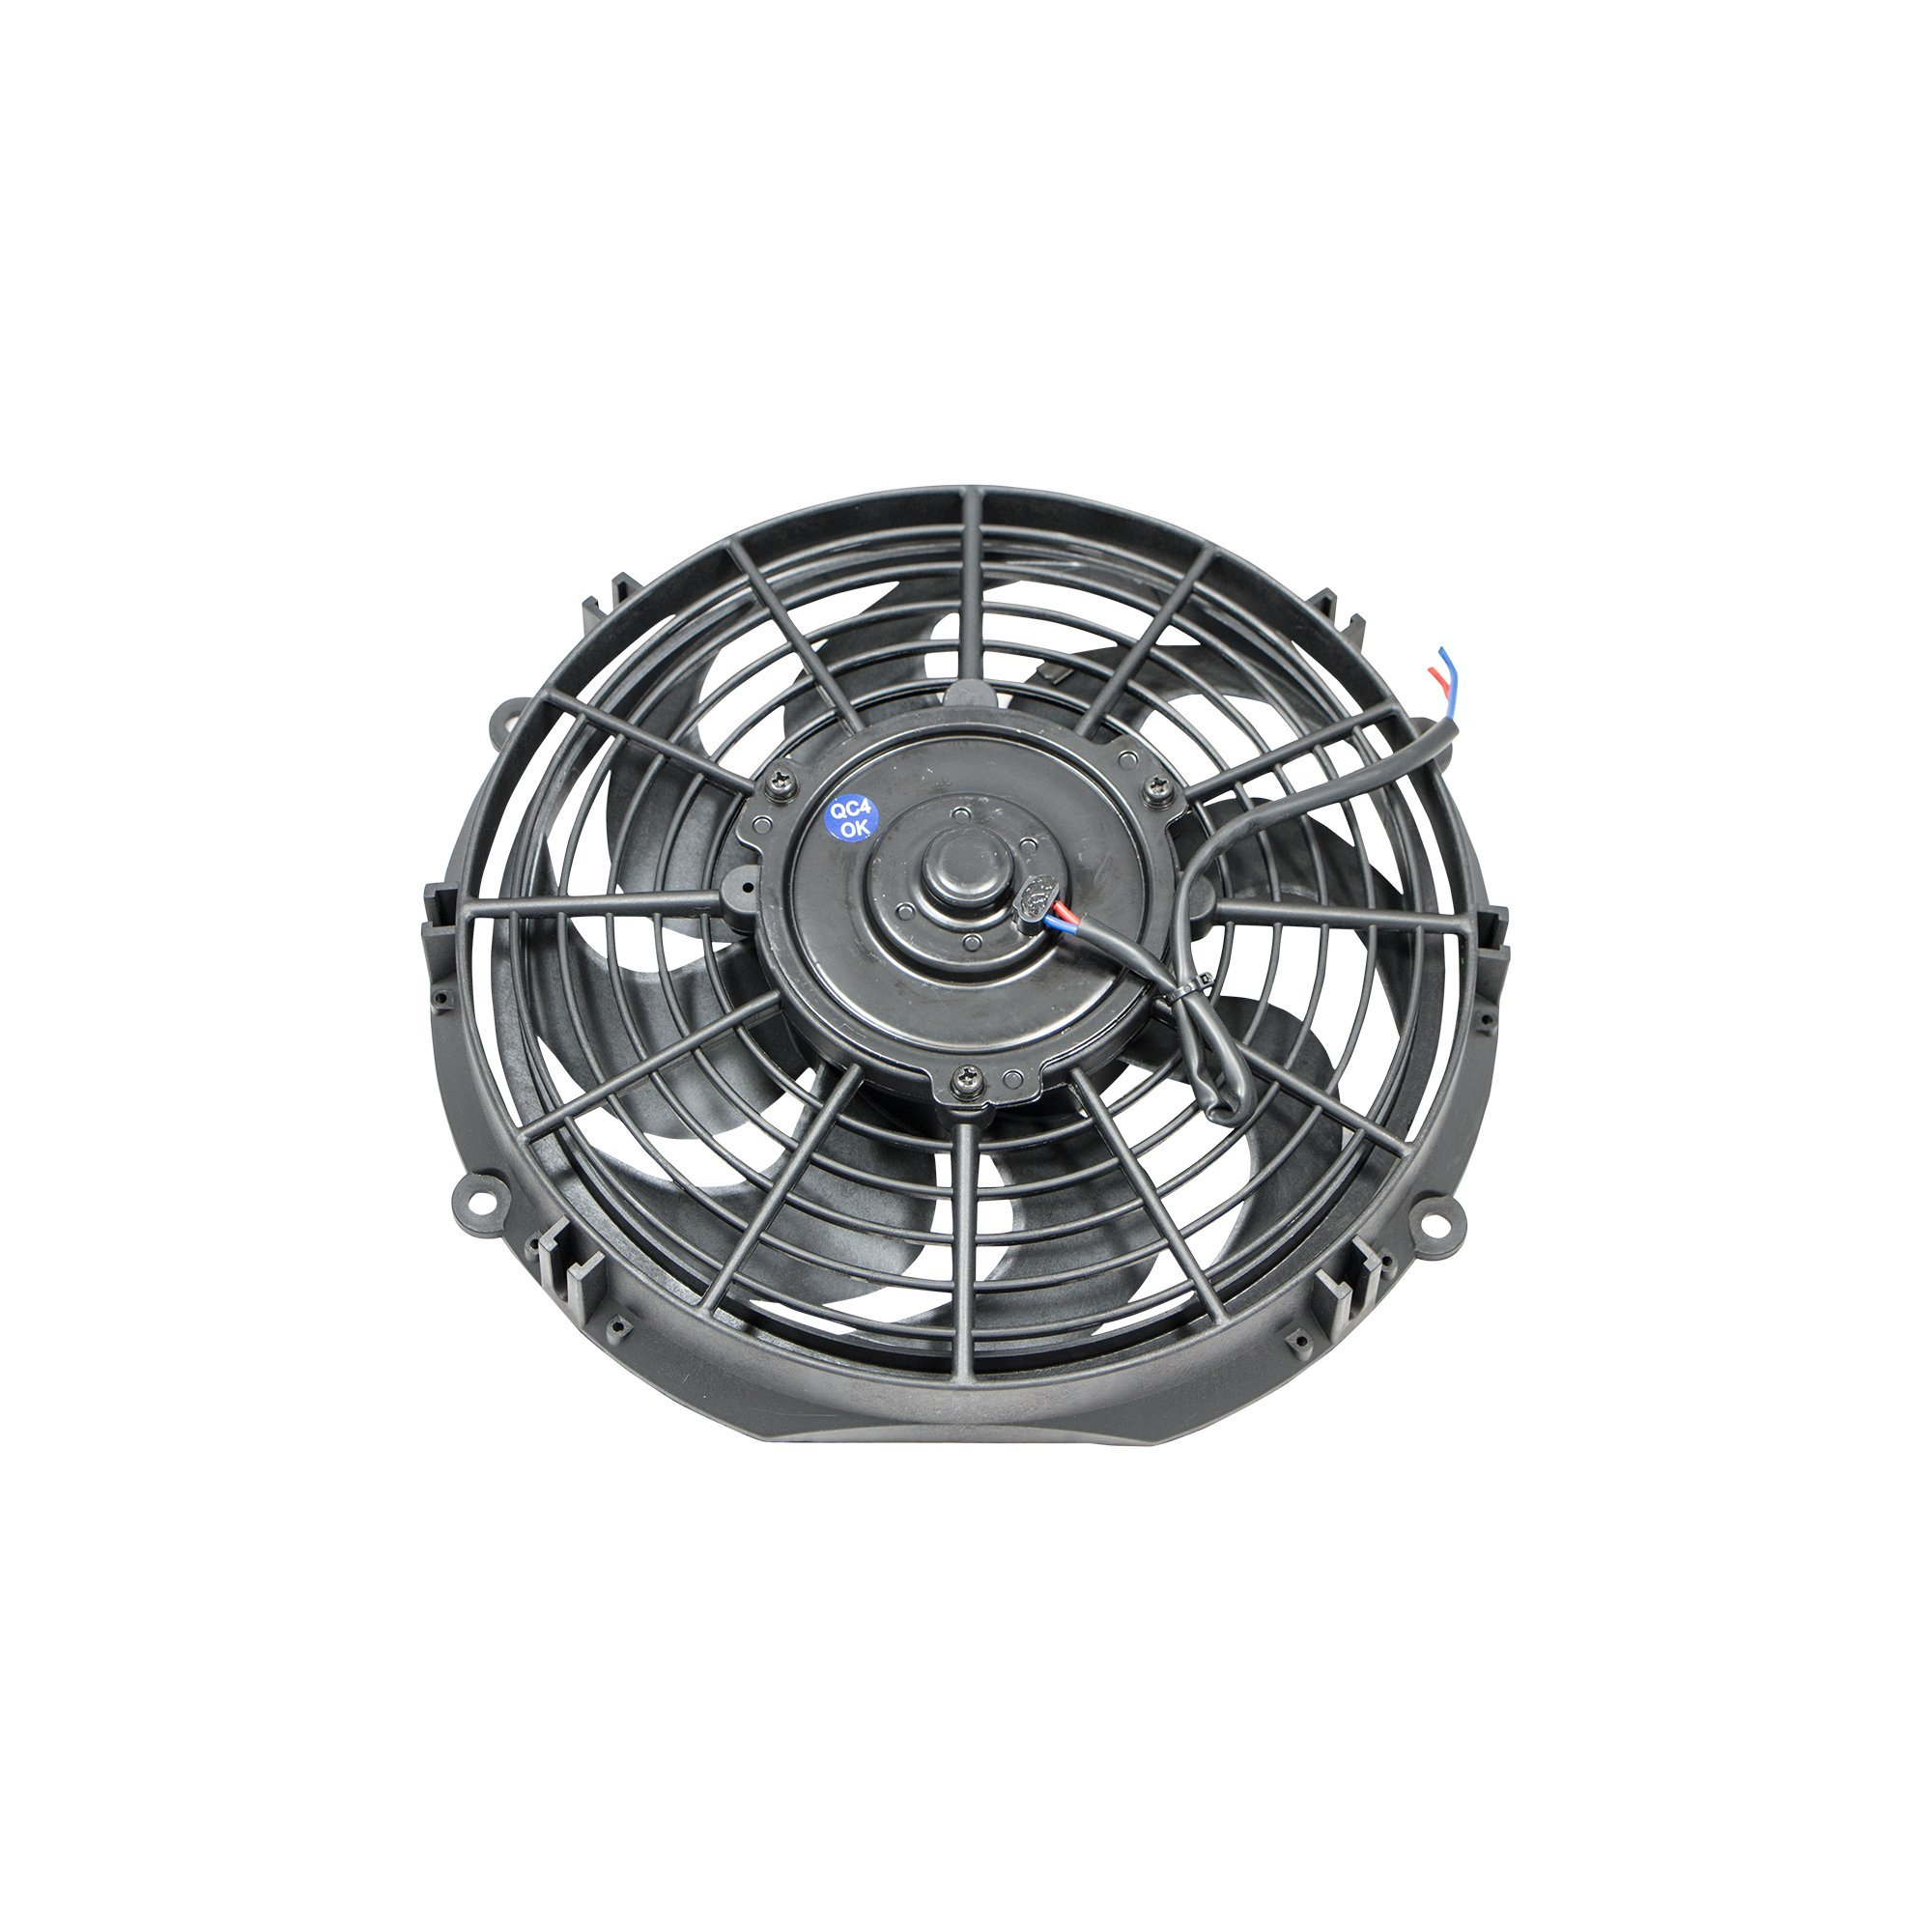 Top Street Performance HC7102 Pro Series 10'' Radiator Fan with Computer Balanced Curved Blade by Top Street Performance